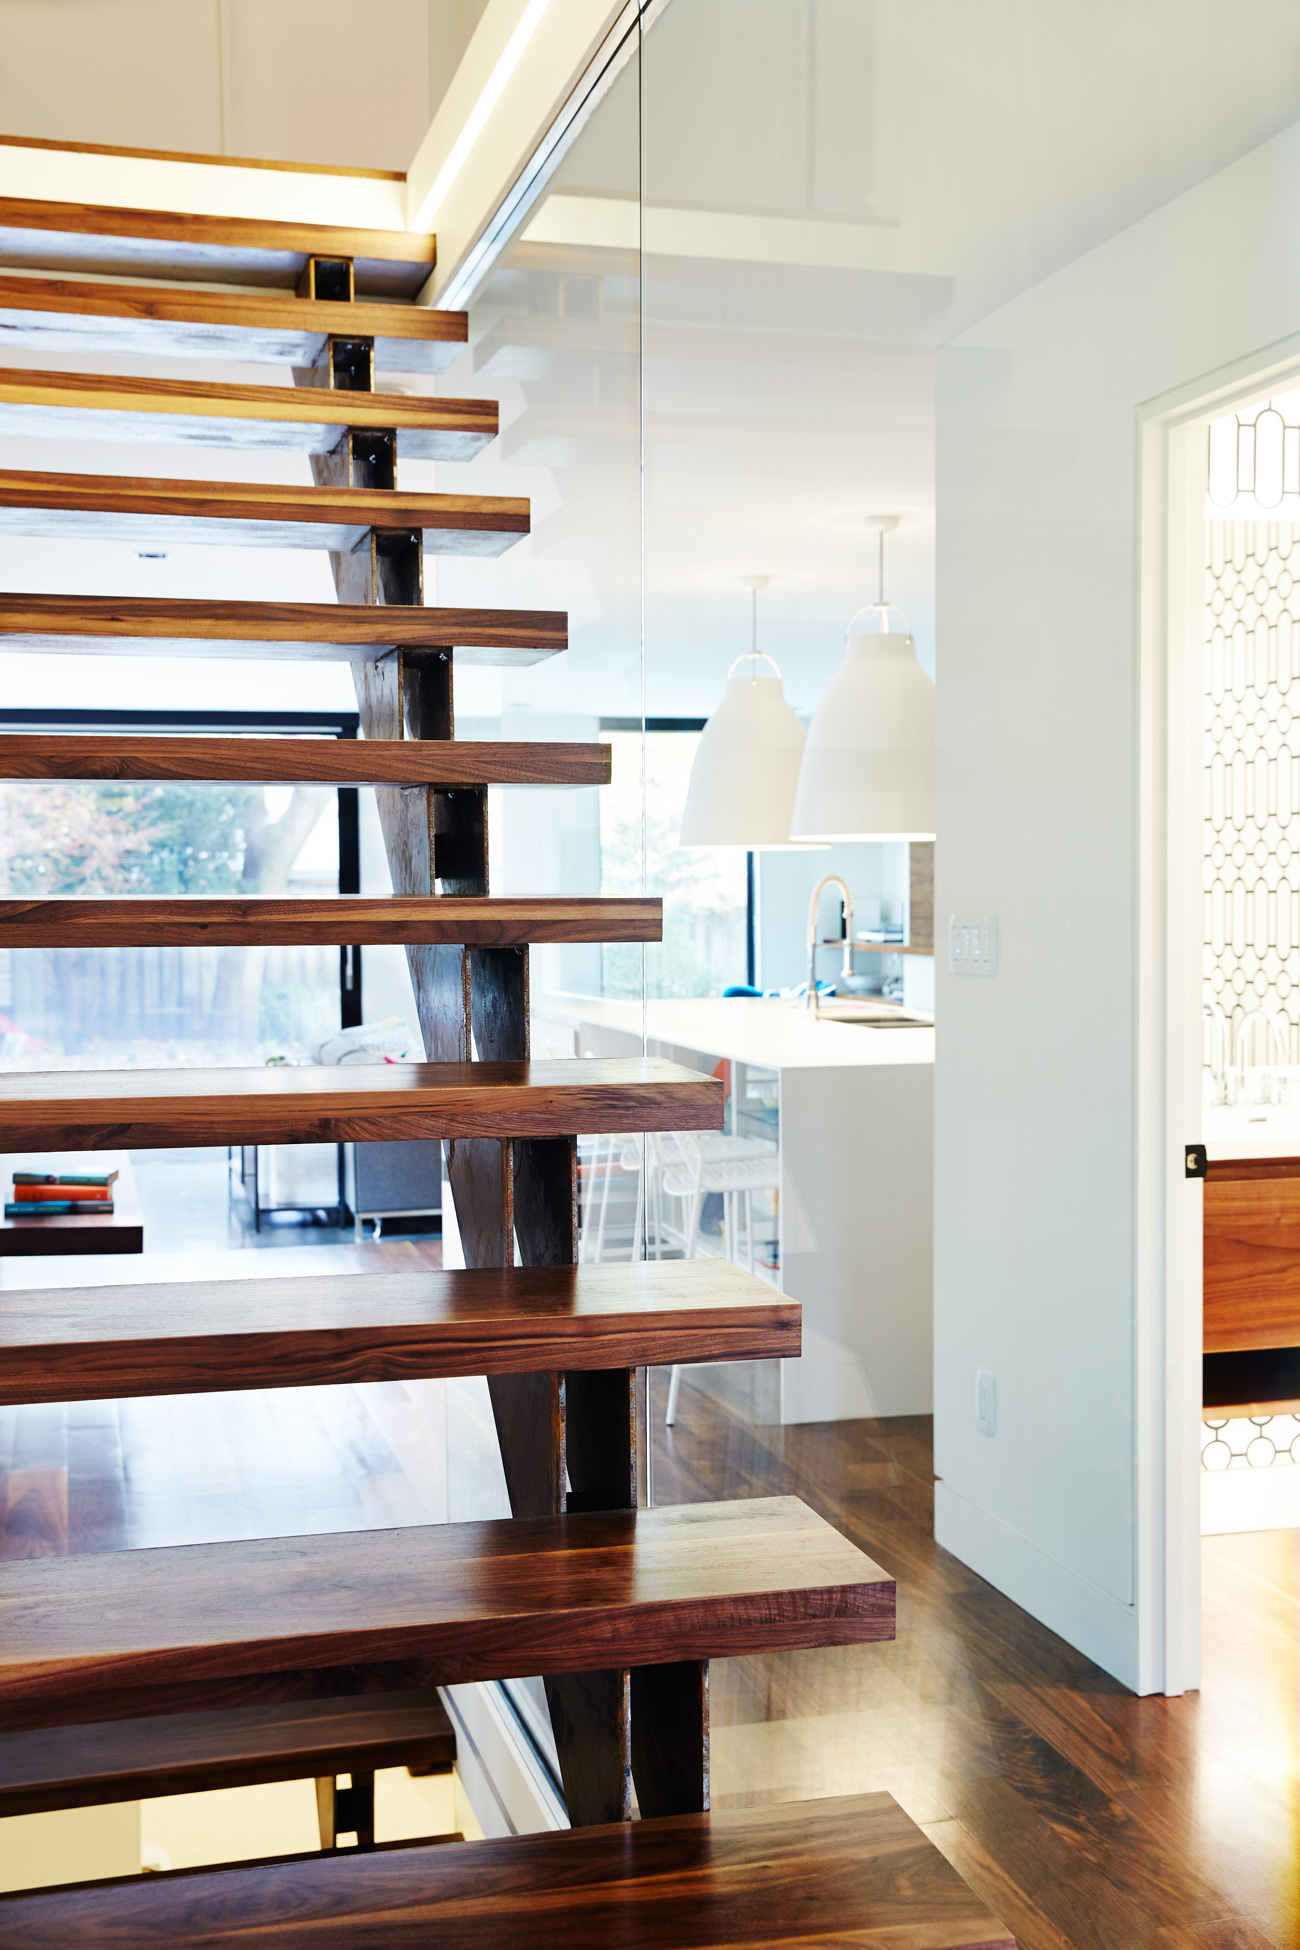 The open-tread staircase with two single stringers and glass railing spans three storeys and offers views from the foyer to the backyard.